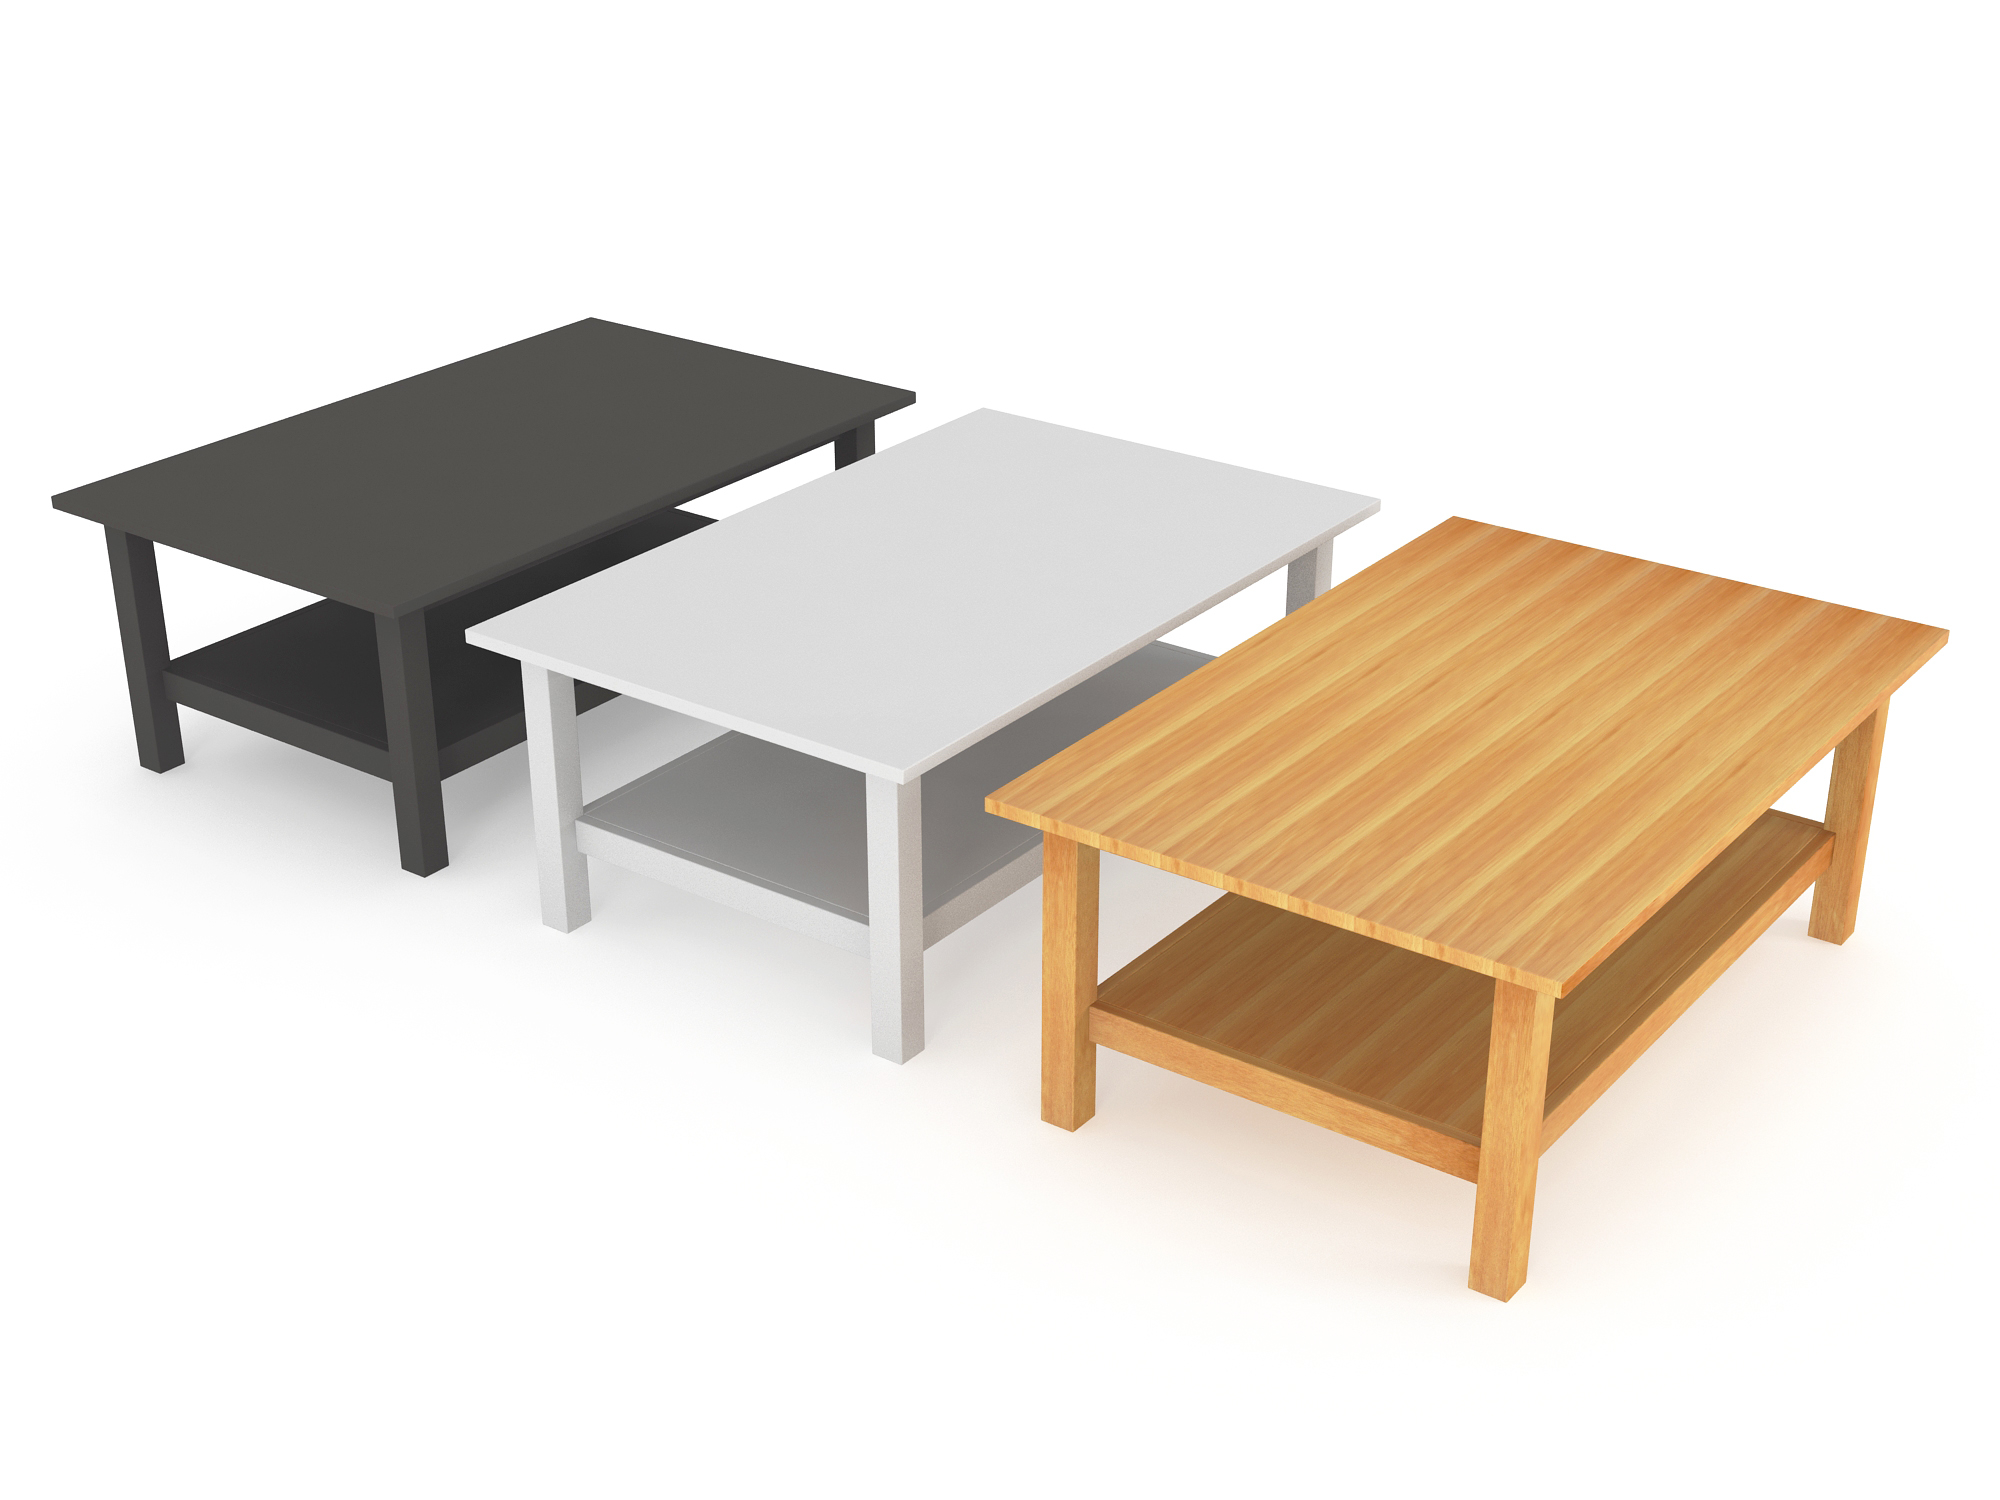 Fantastic Ikea Hemnes Coffee Table In The Three Colors Cjindustries Chair Design For Home Cjindustriesco